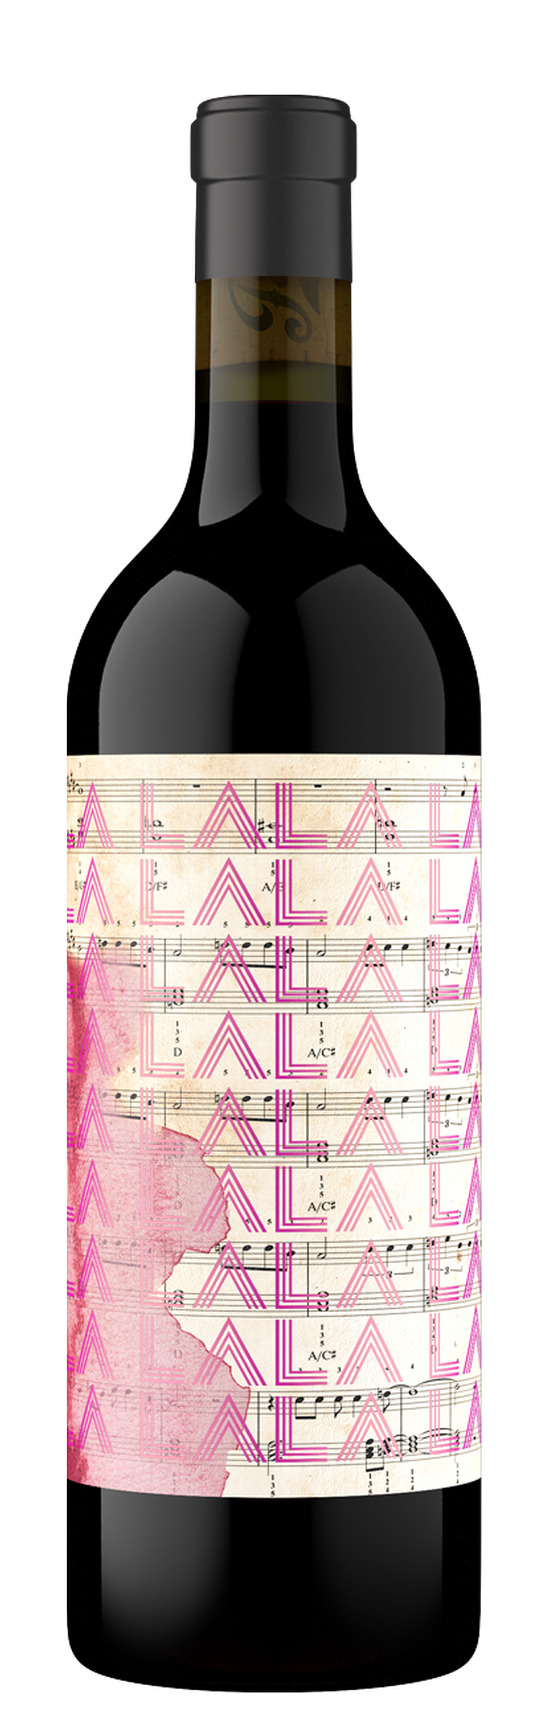 2017 I Say LA LALA LA LA, Red Wine, Napa Valley